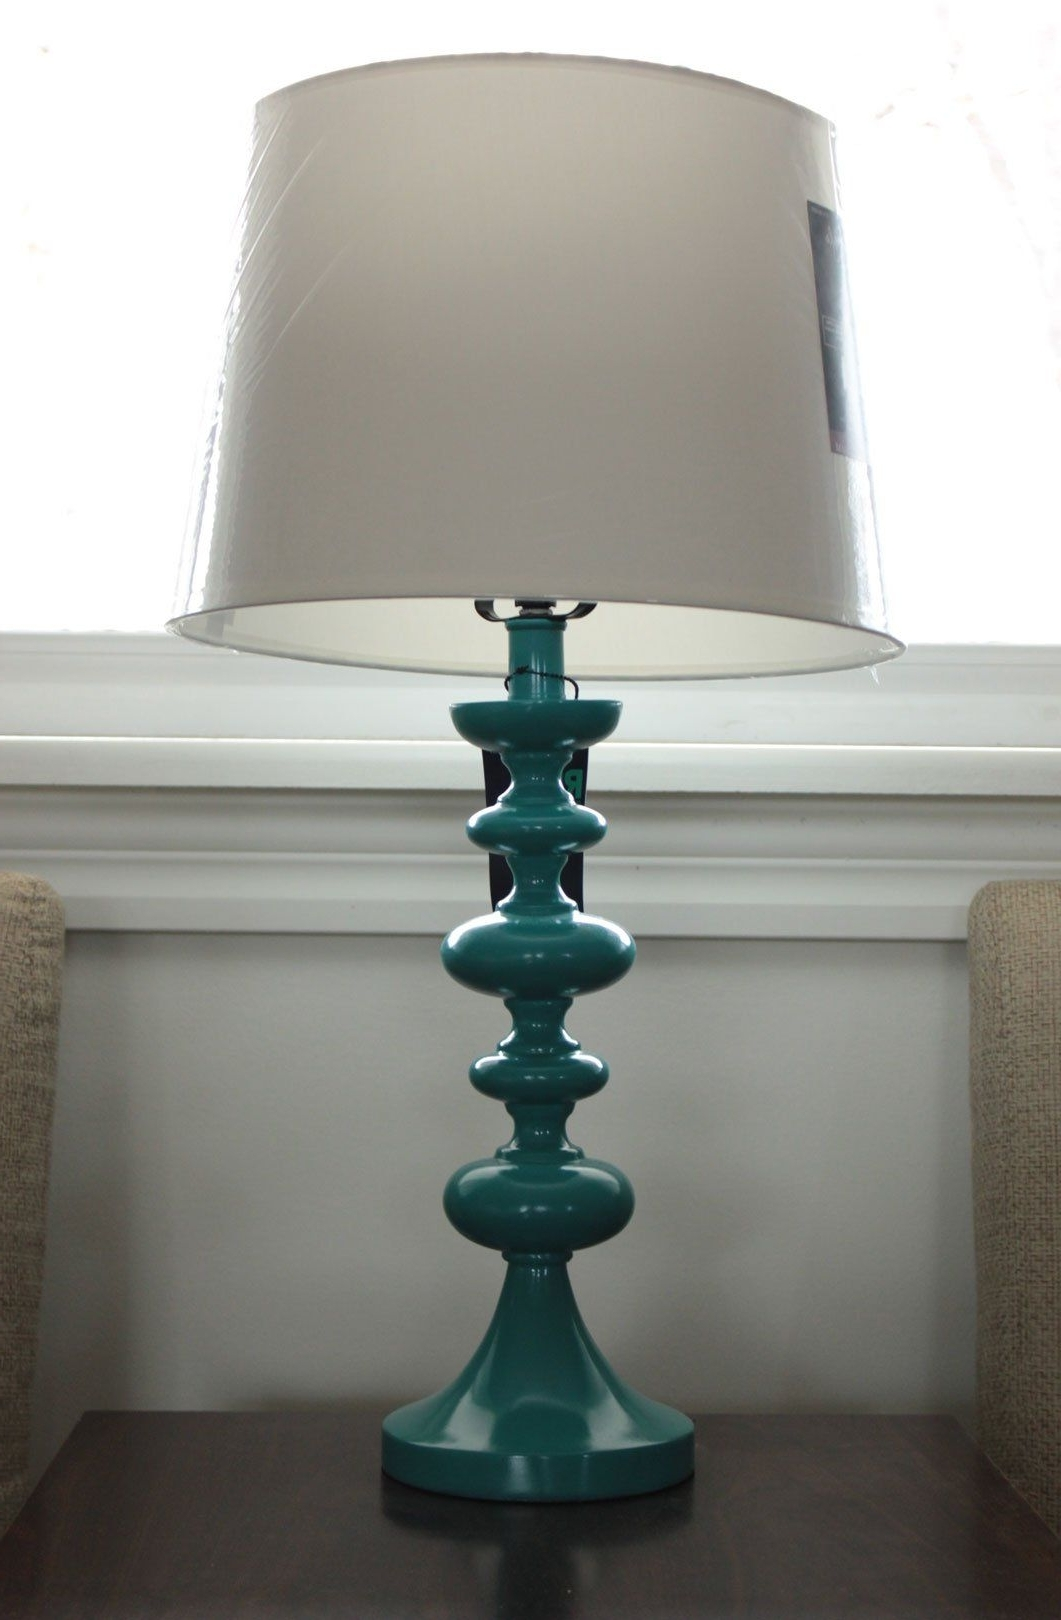 Target Table Lamps For Teal Living Room Table Lamps (View 14 of 15)